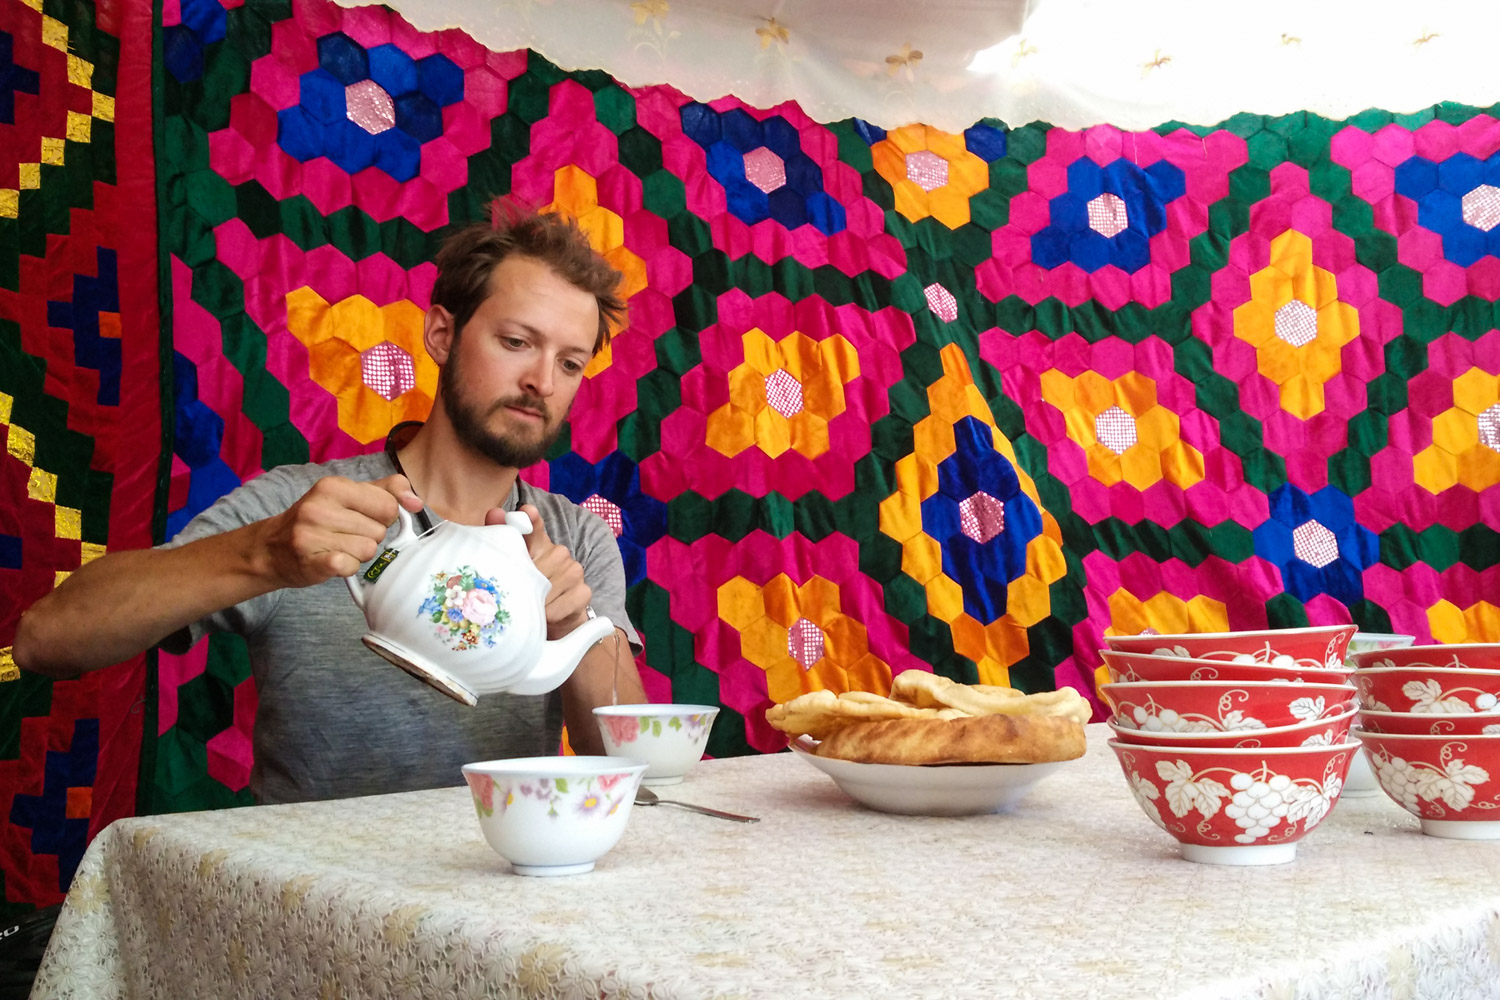 Pouring some tea in a colorful yurt